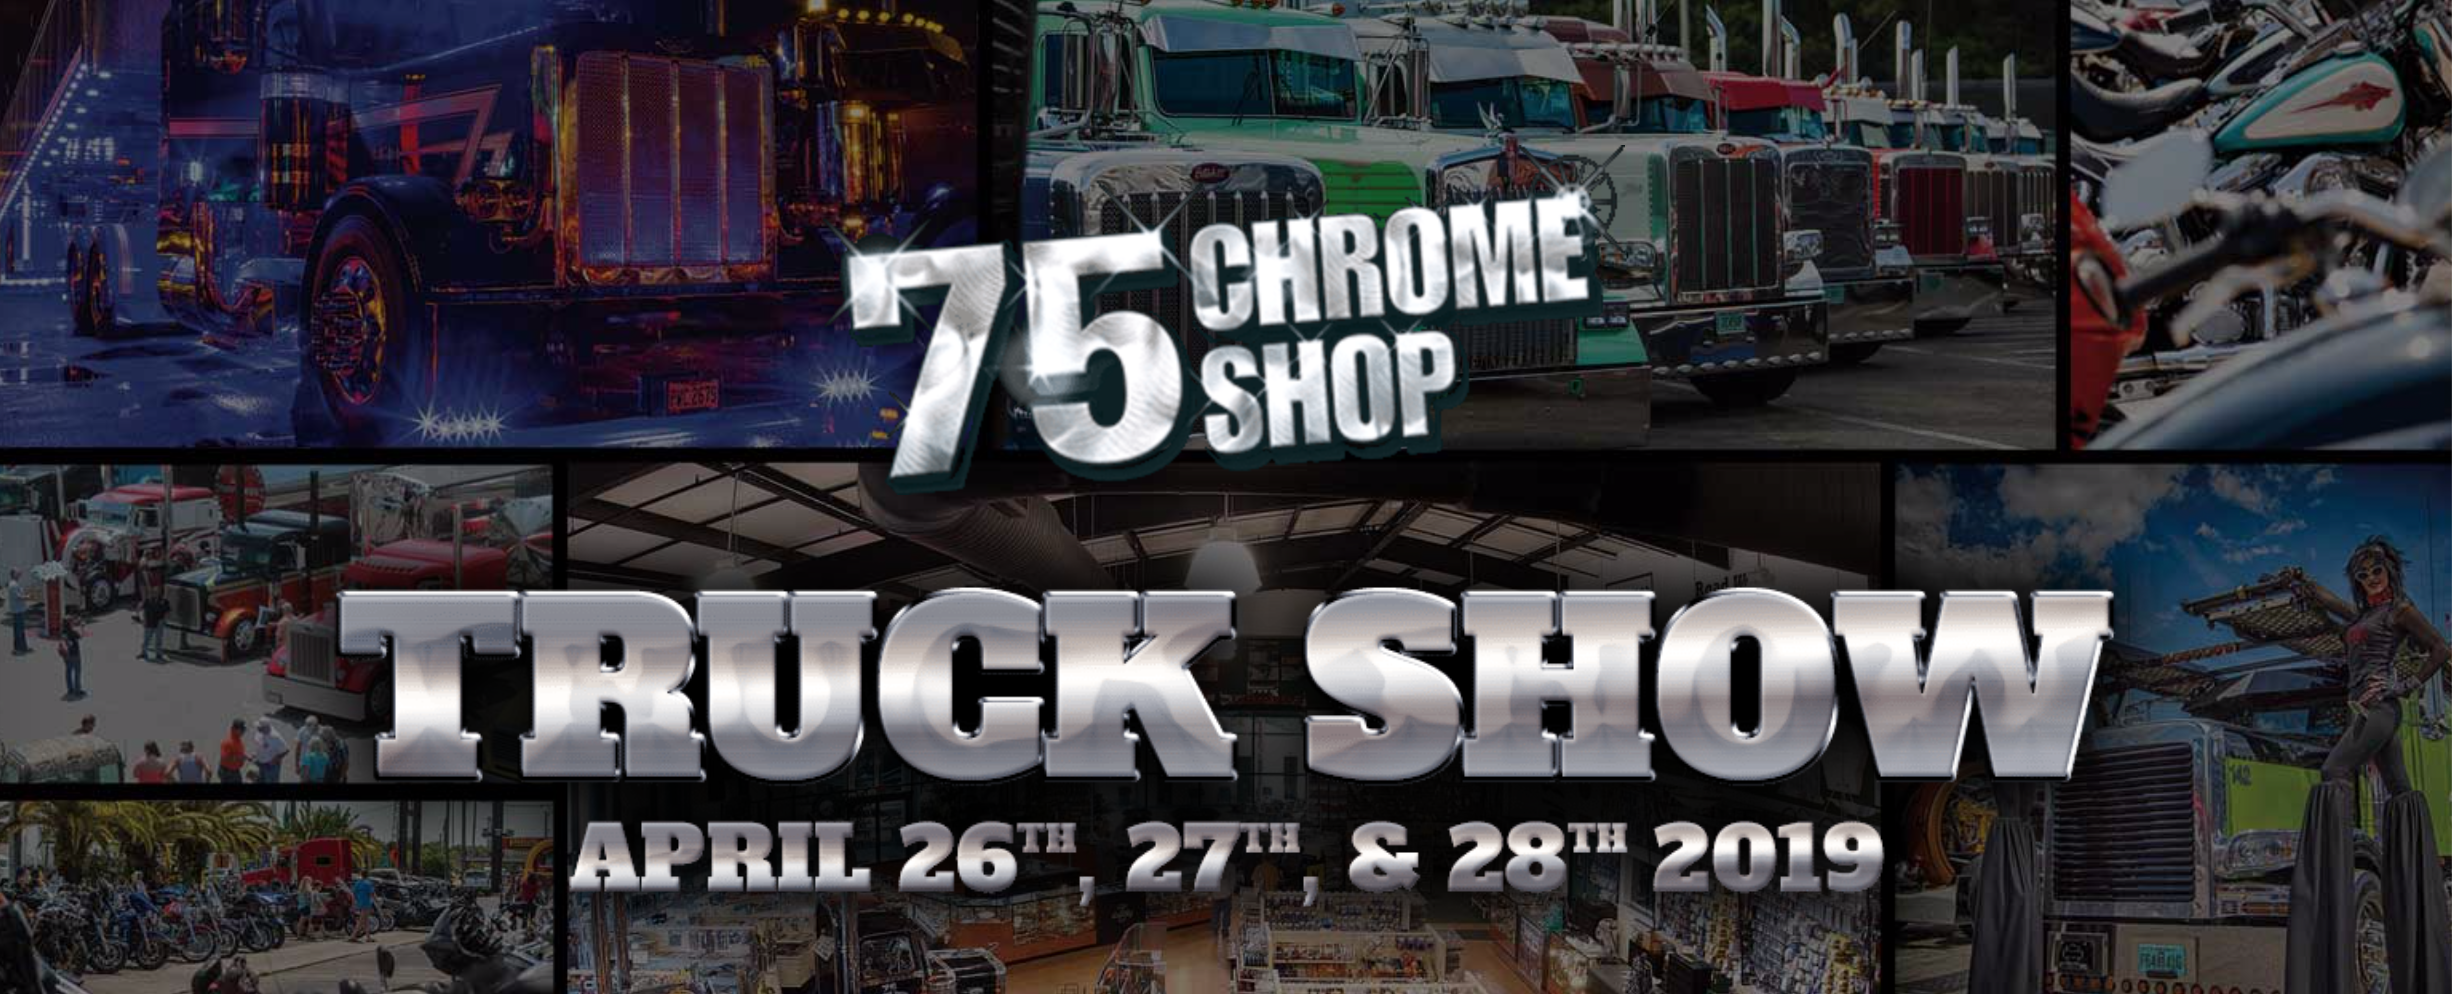 75 Chrome Shop Trucking Show 2019 - Wildwood, FL